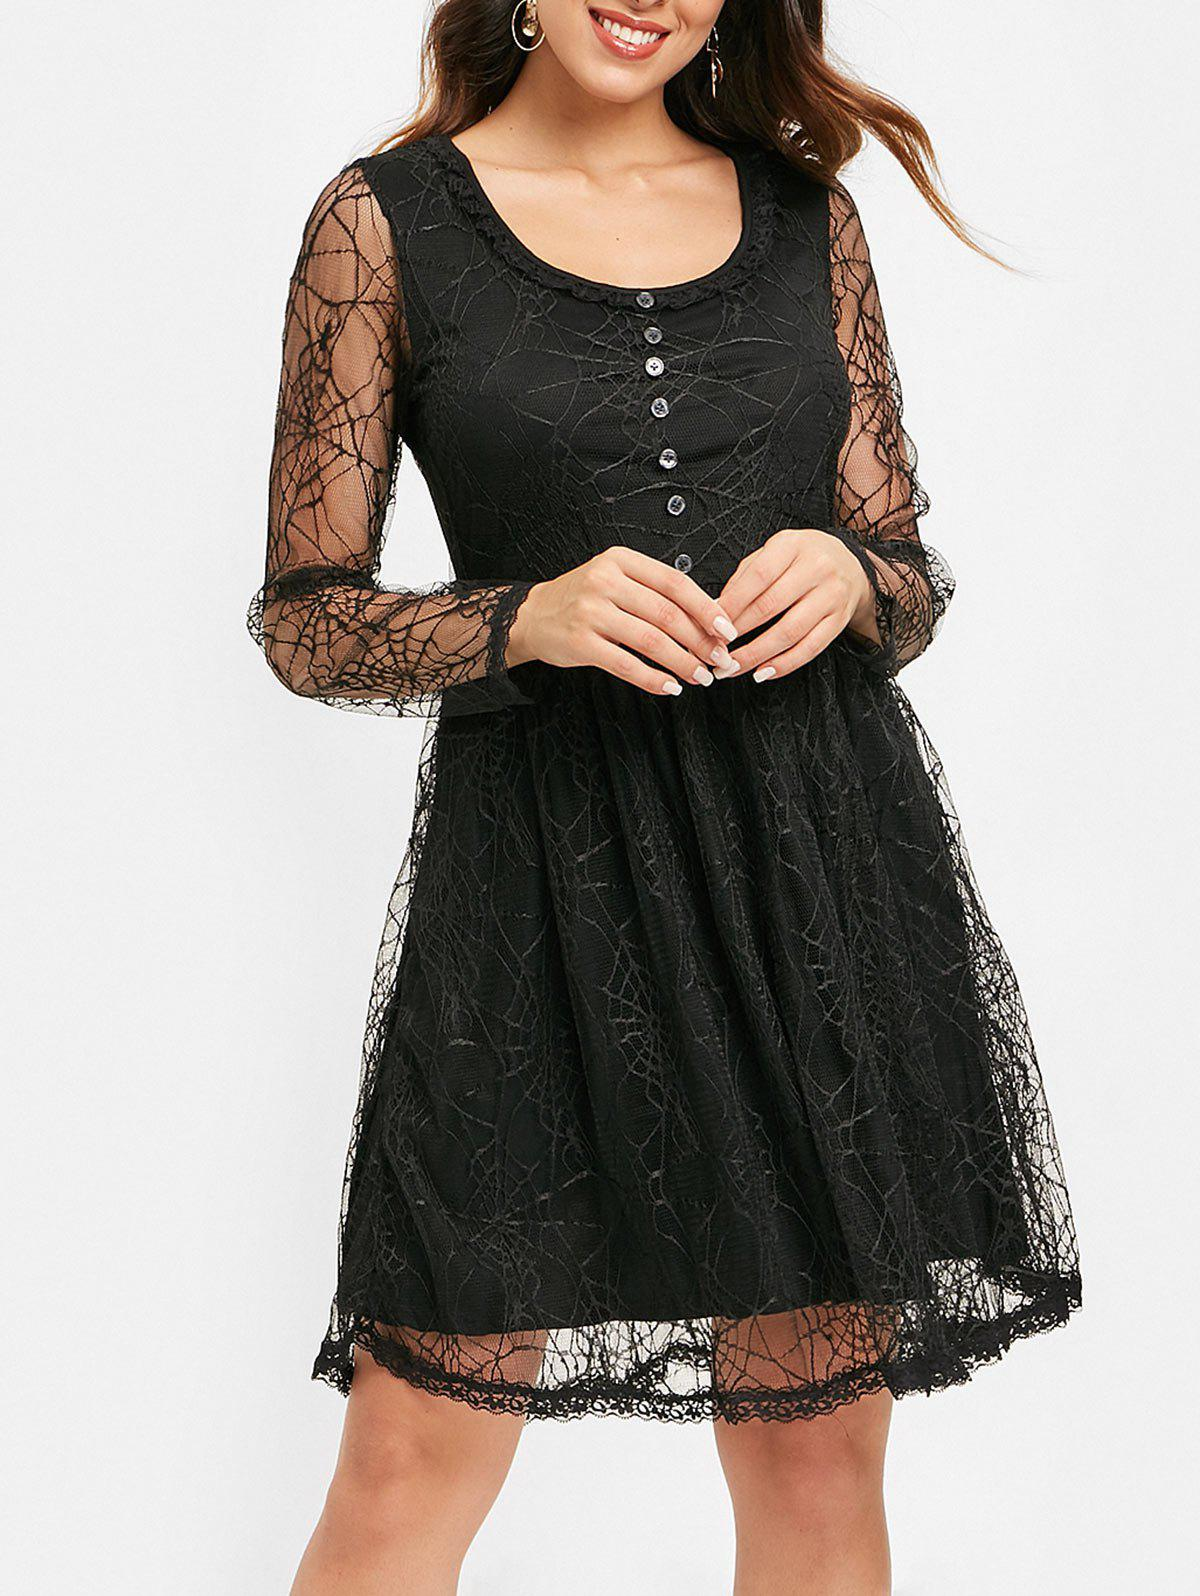 Store Half Buttons Spider Web Lace Dress